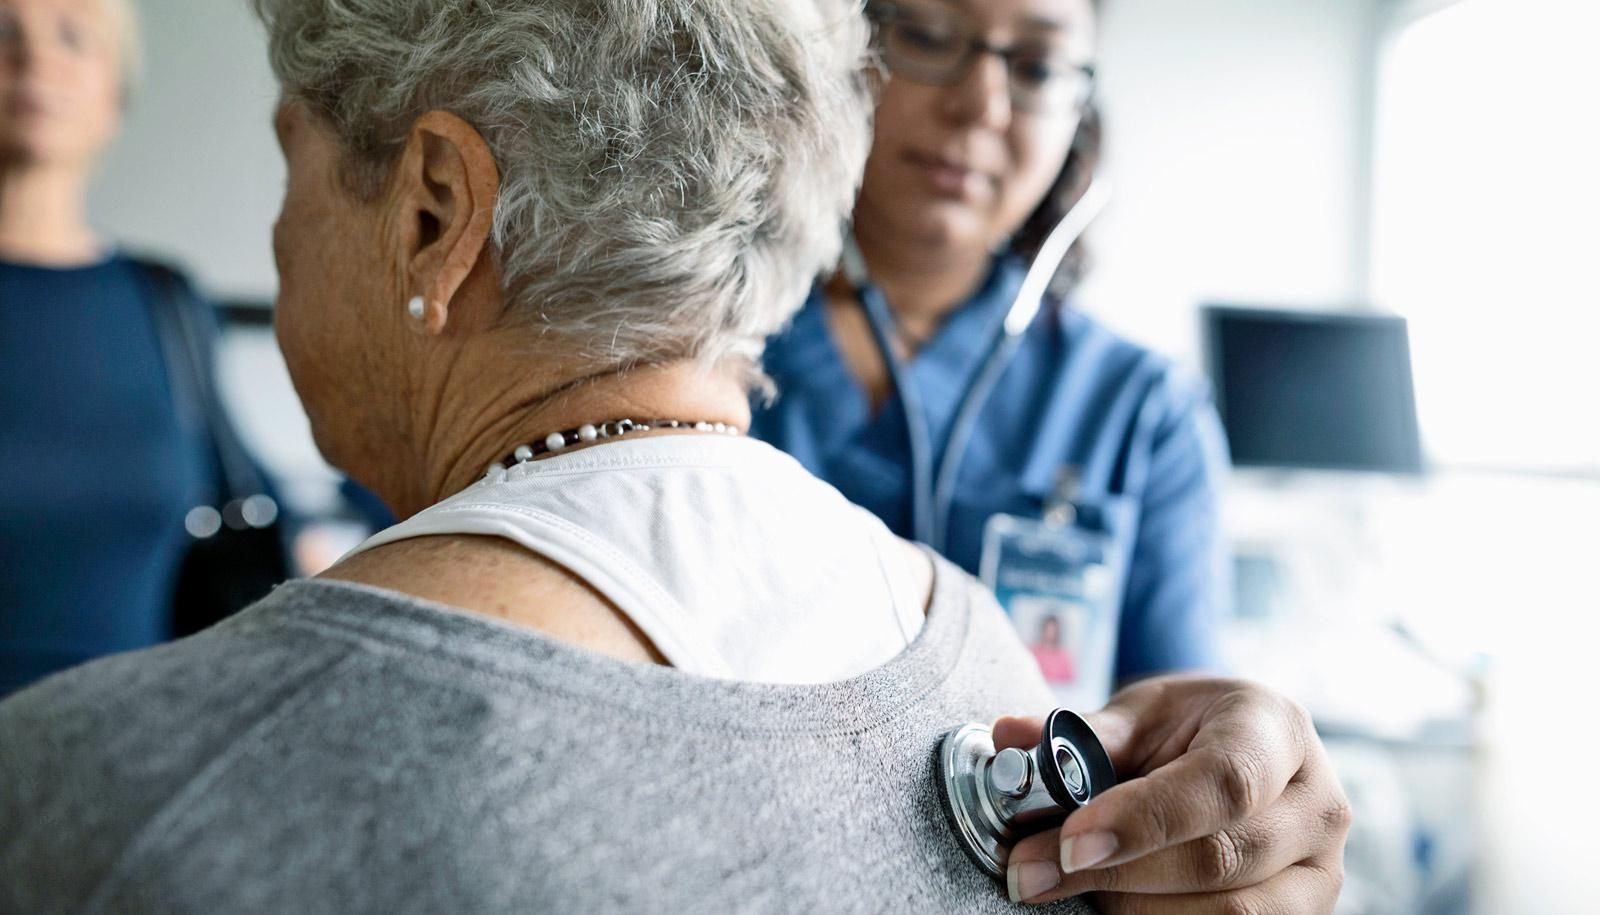 medical worker holds stethoscope on woman's back